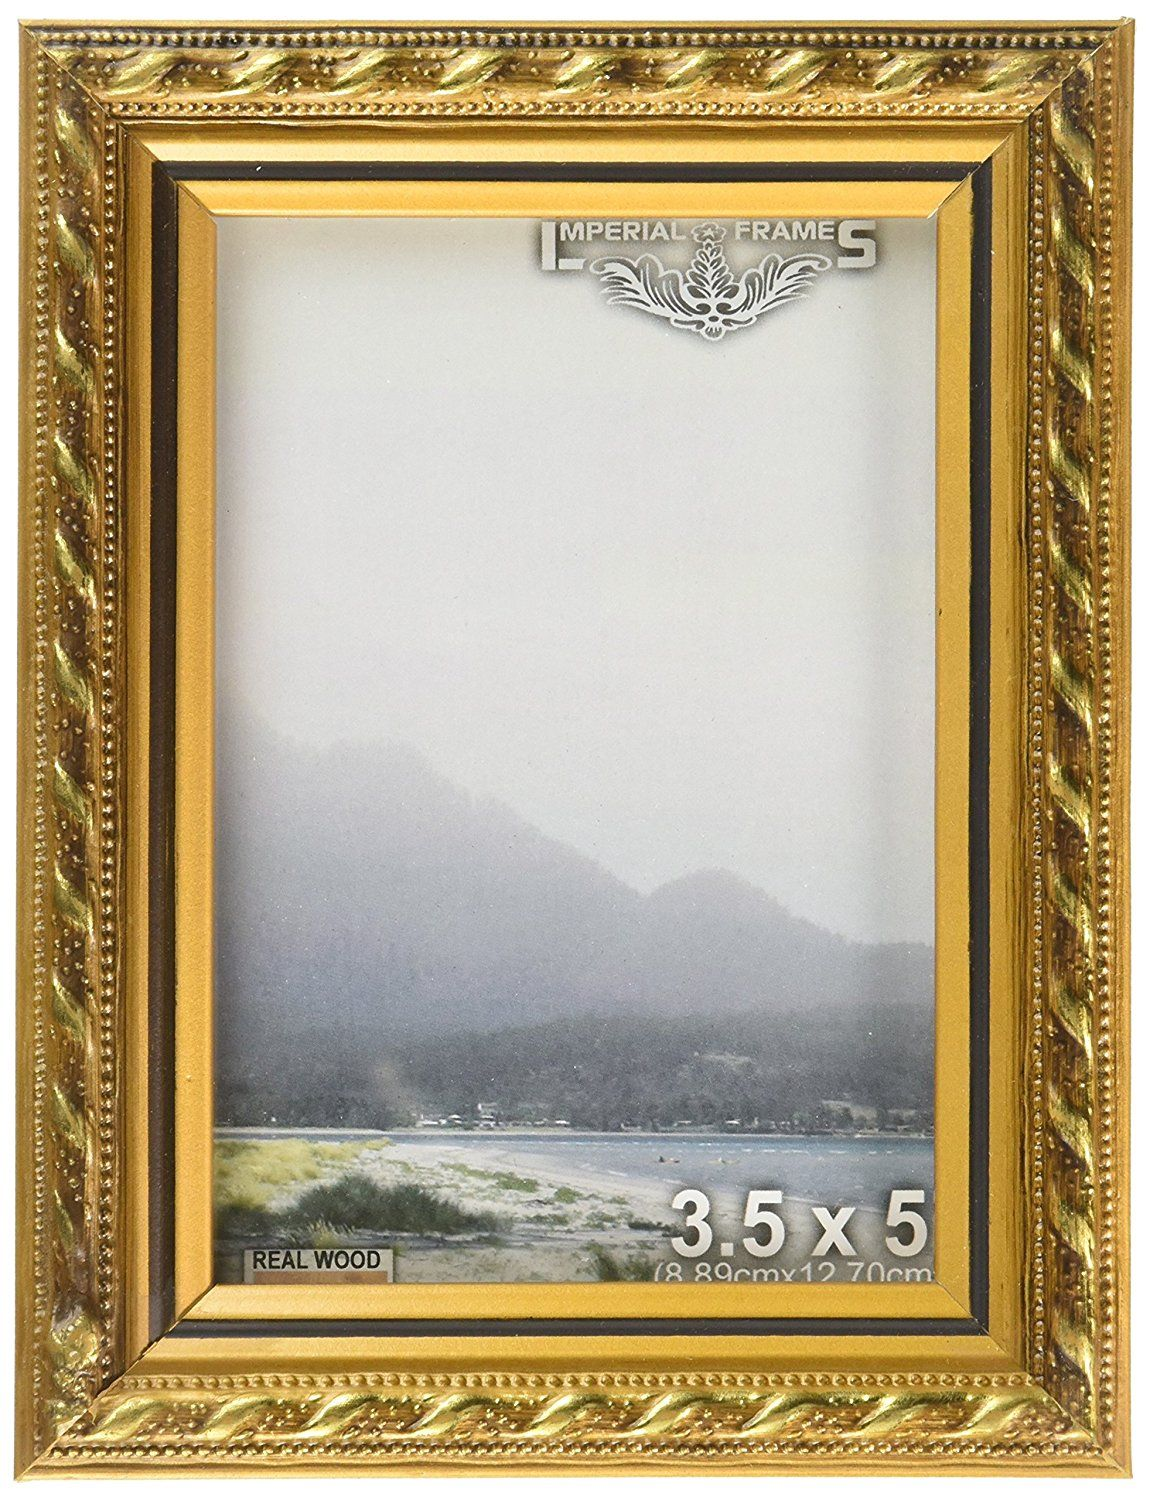 Imperial frames 13 by 19 inch19 by 13 inch picturephoto frame imperial frames 13 by 19 inch19 by 13 inch picturephoto jeuxipadfo Images